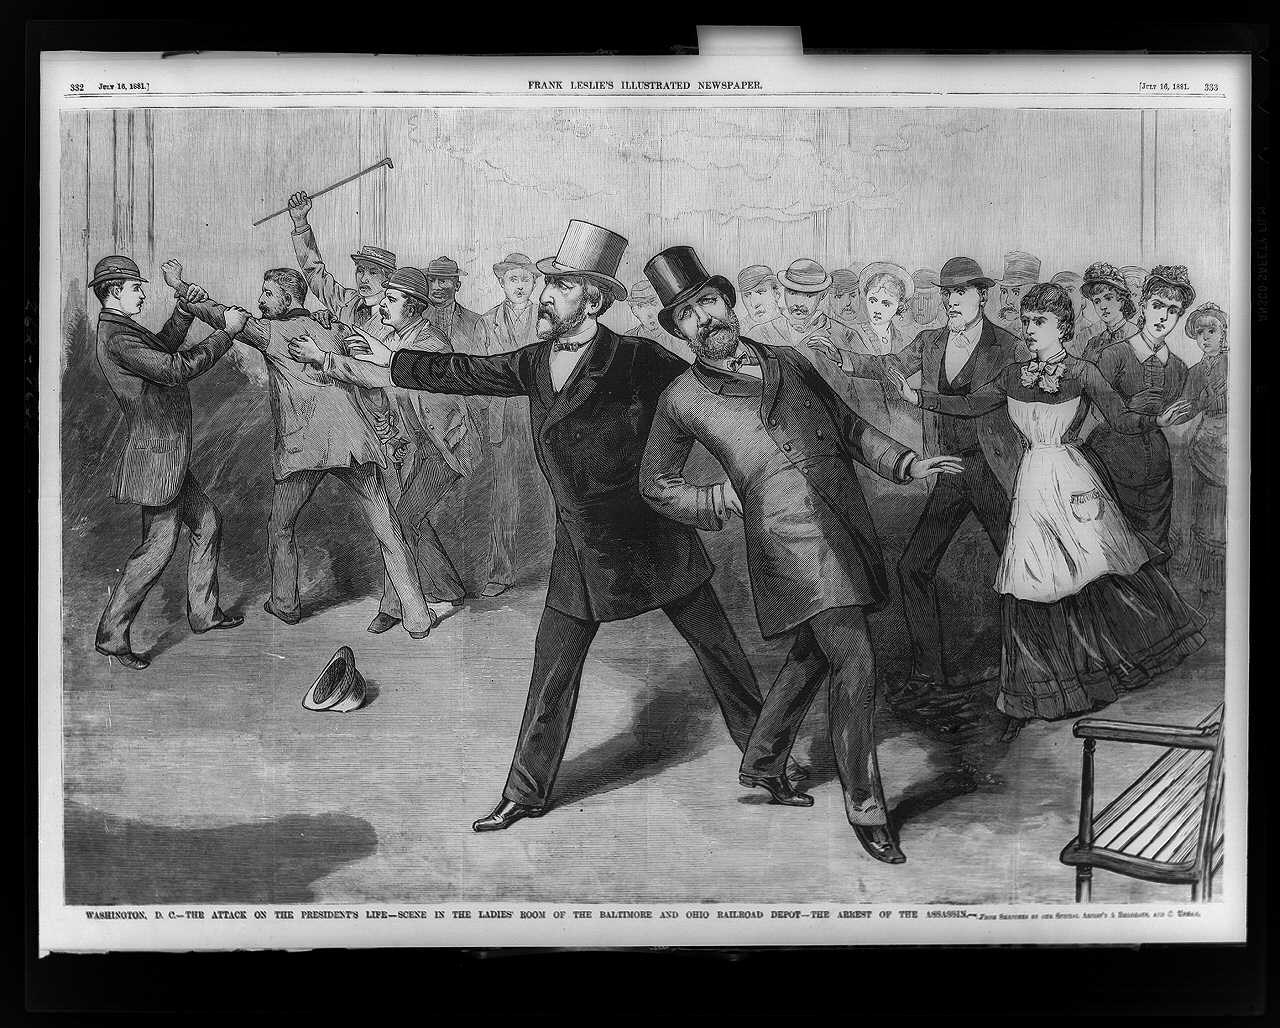 Assassination of President Garfield